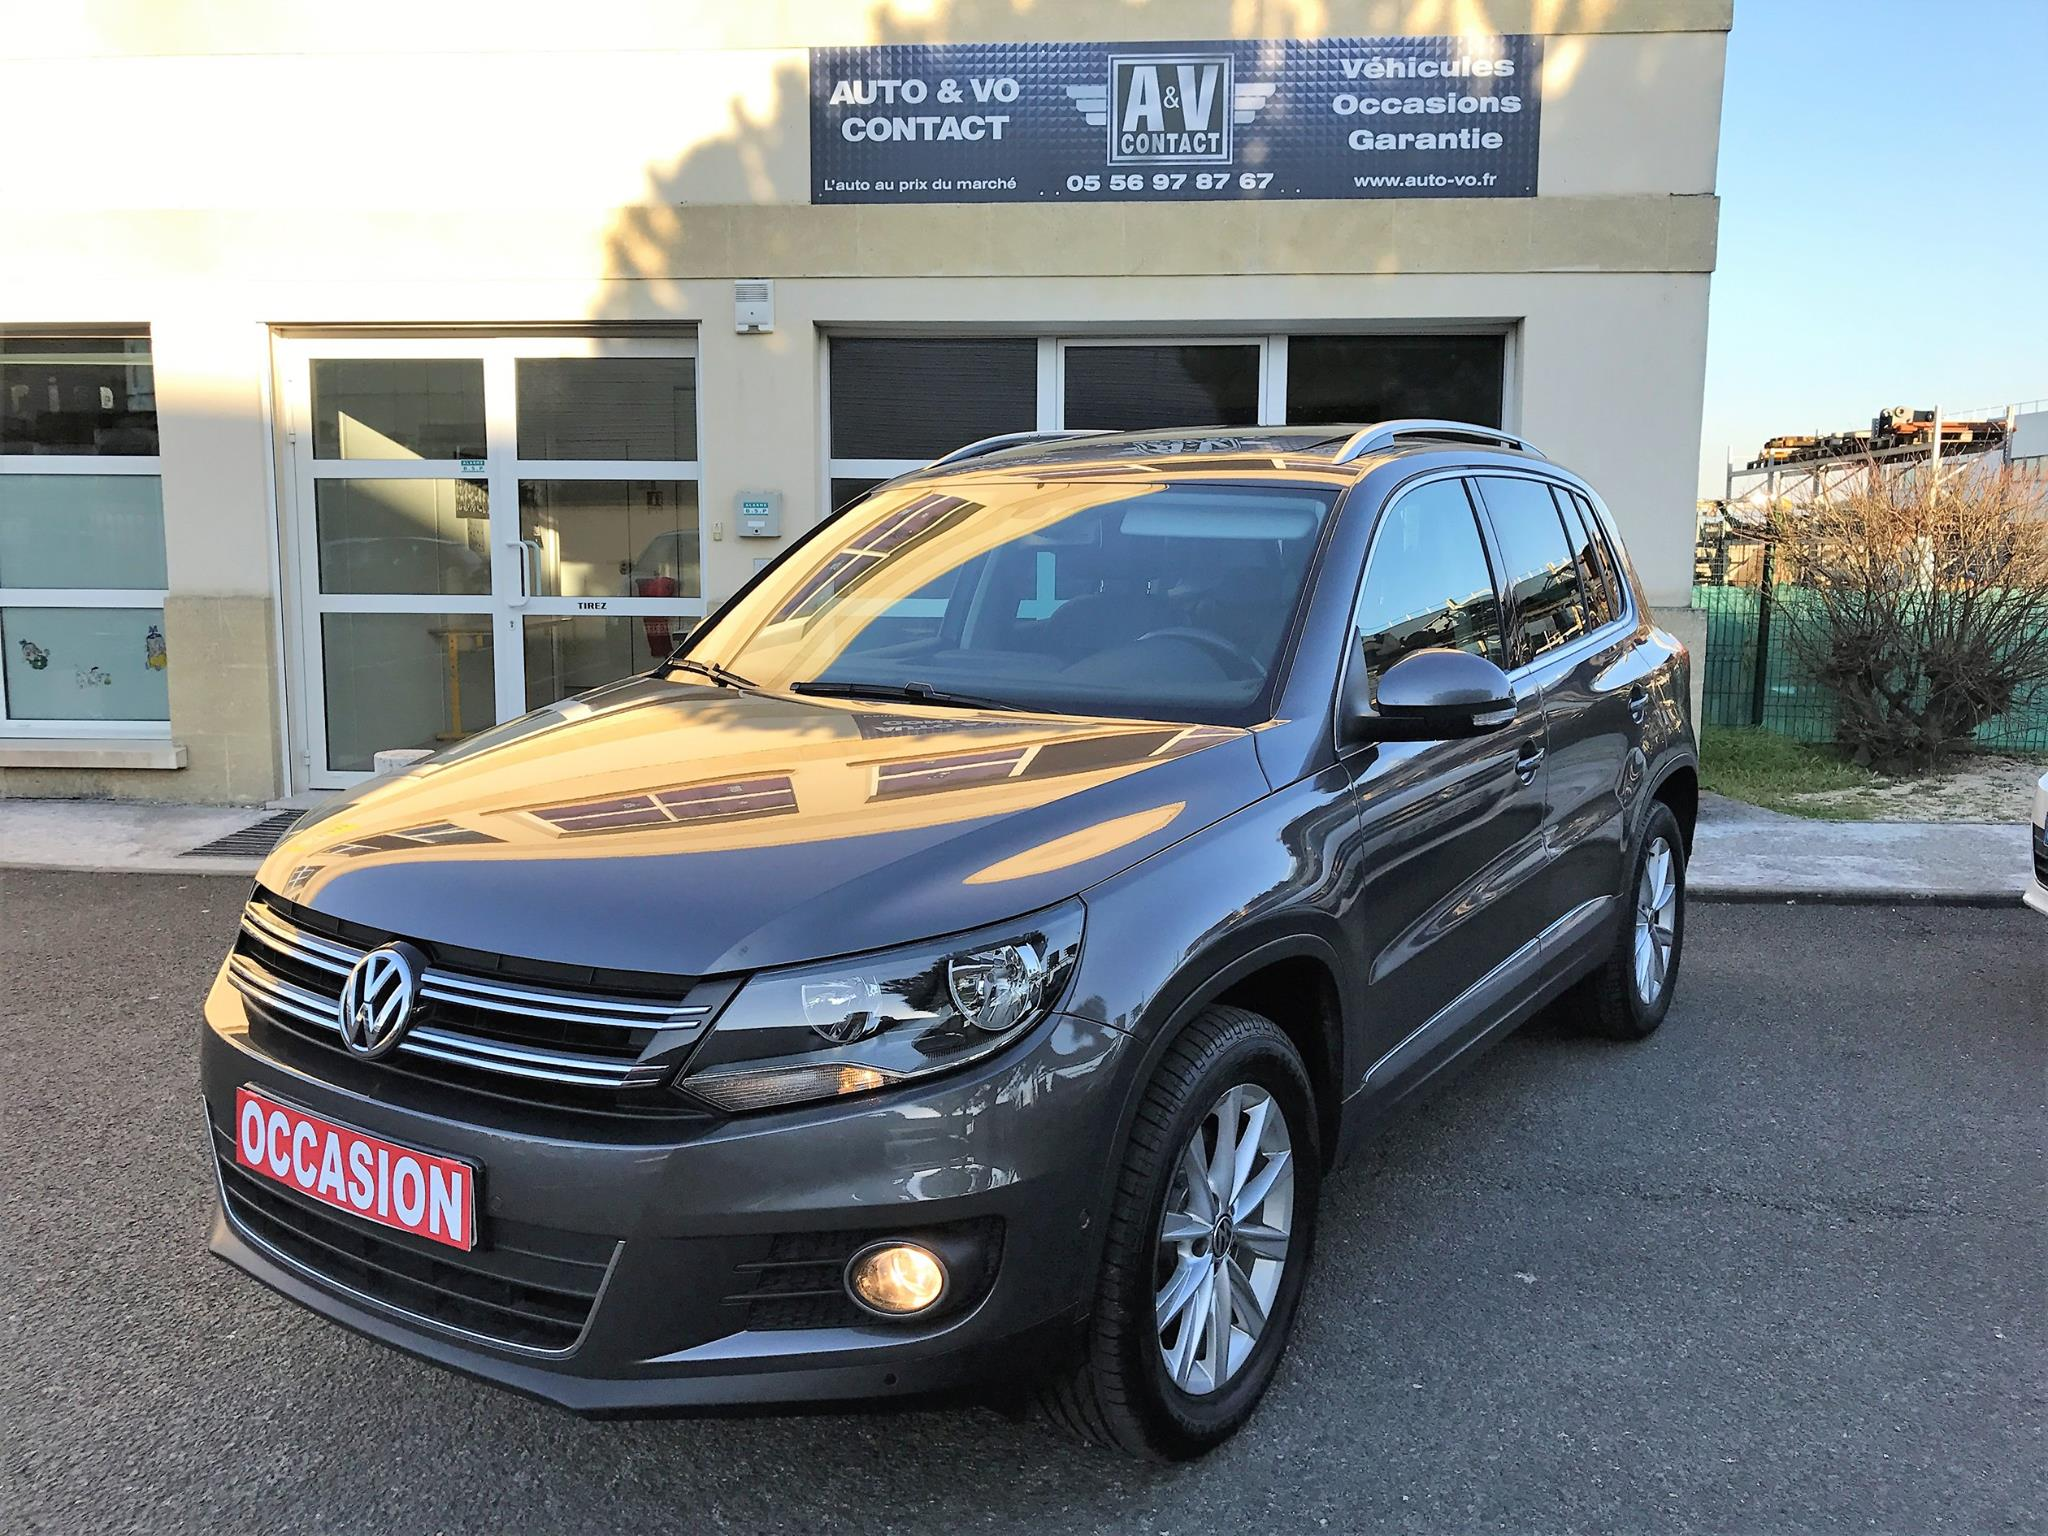 volkswagen tiguan 2 0 tdi 140 carat du 134 600 kms vendu sarl auto vo contact. Black Bedroom Furniture Sets. Home Design Ideas